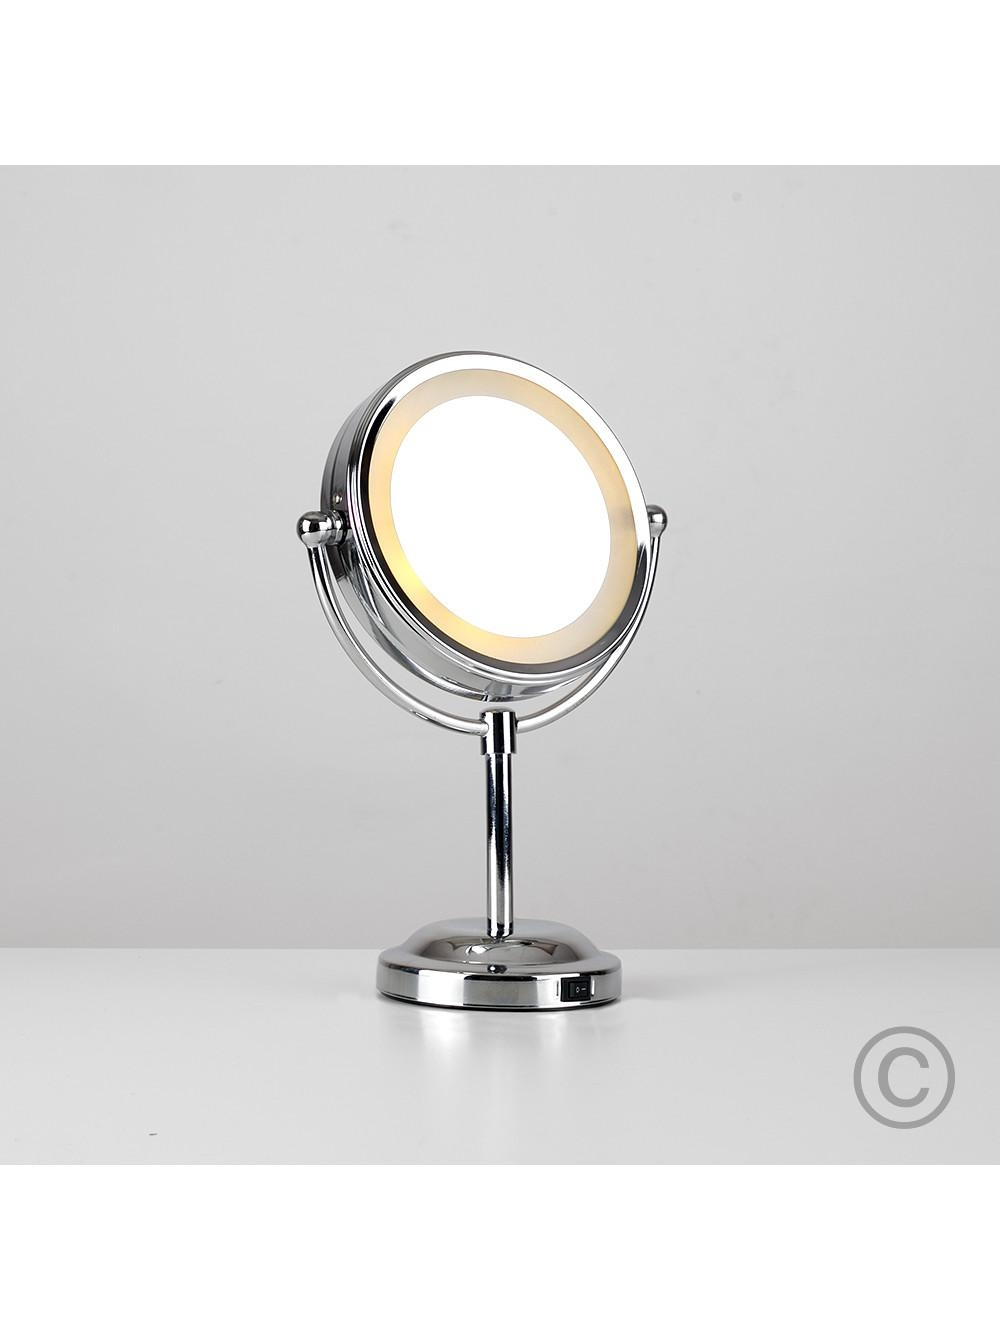 Small Round Light Up Free Standing Mirror | Valuelights For Small Free Standing Mirror (Image 15 of 20)